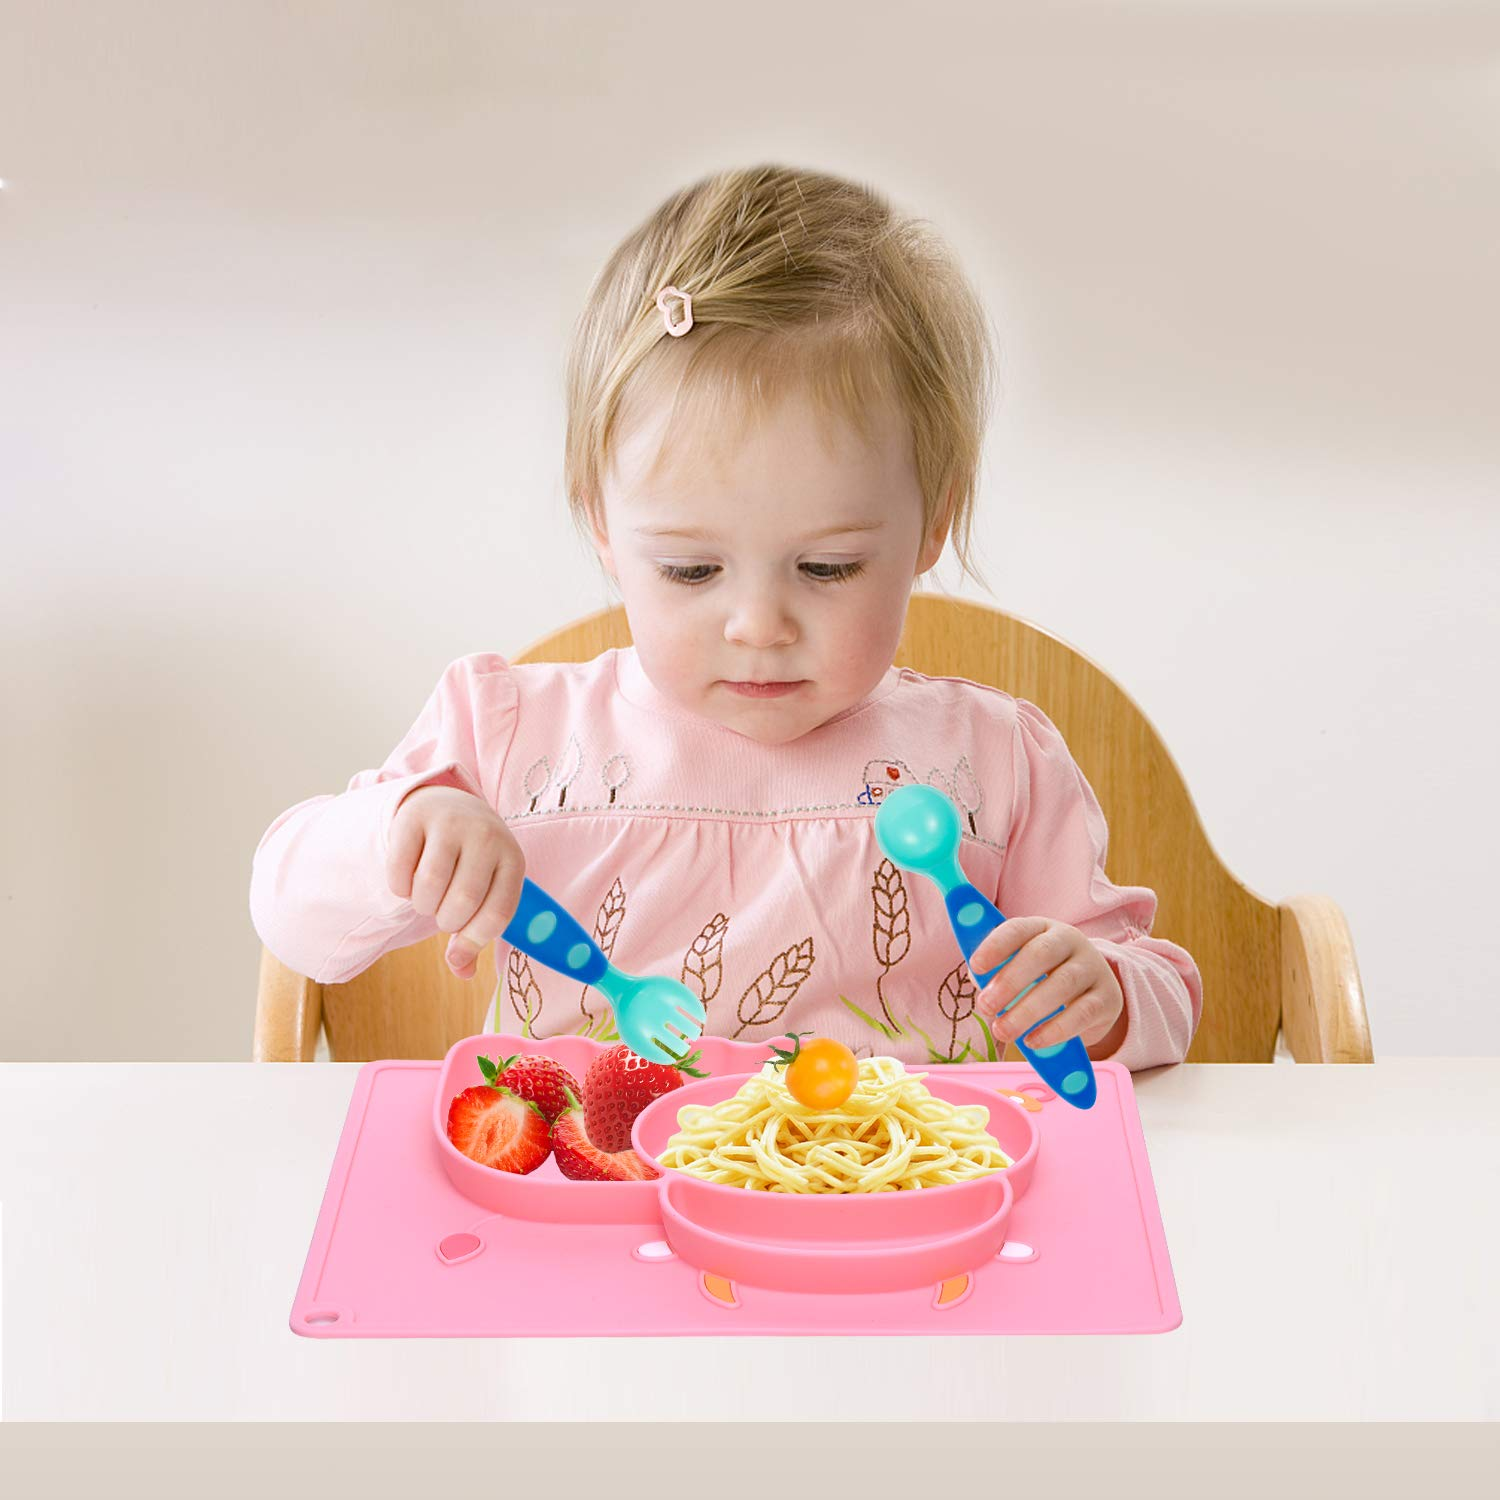 Feeding Plate Set for Toddlers Babies Kids Fits Most Highchair Trays Baby Silicone Placemat Dishwasher and Microwave Safe Pink Portable and BPA-Free Dishes with FDA Approved and Strong Suction